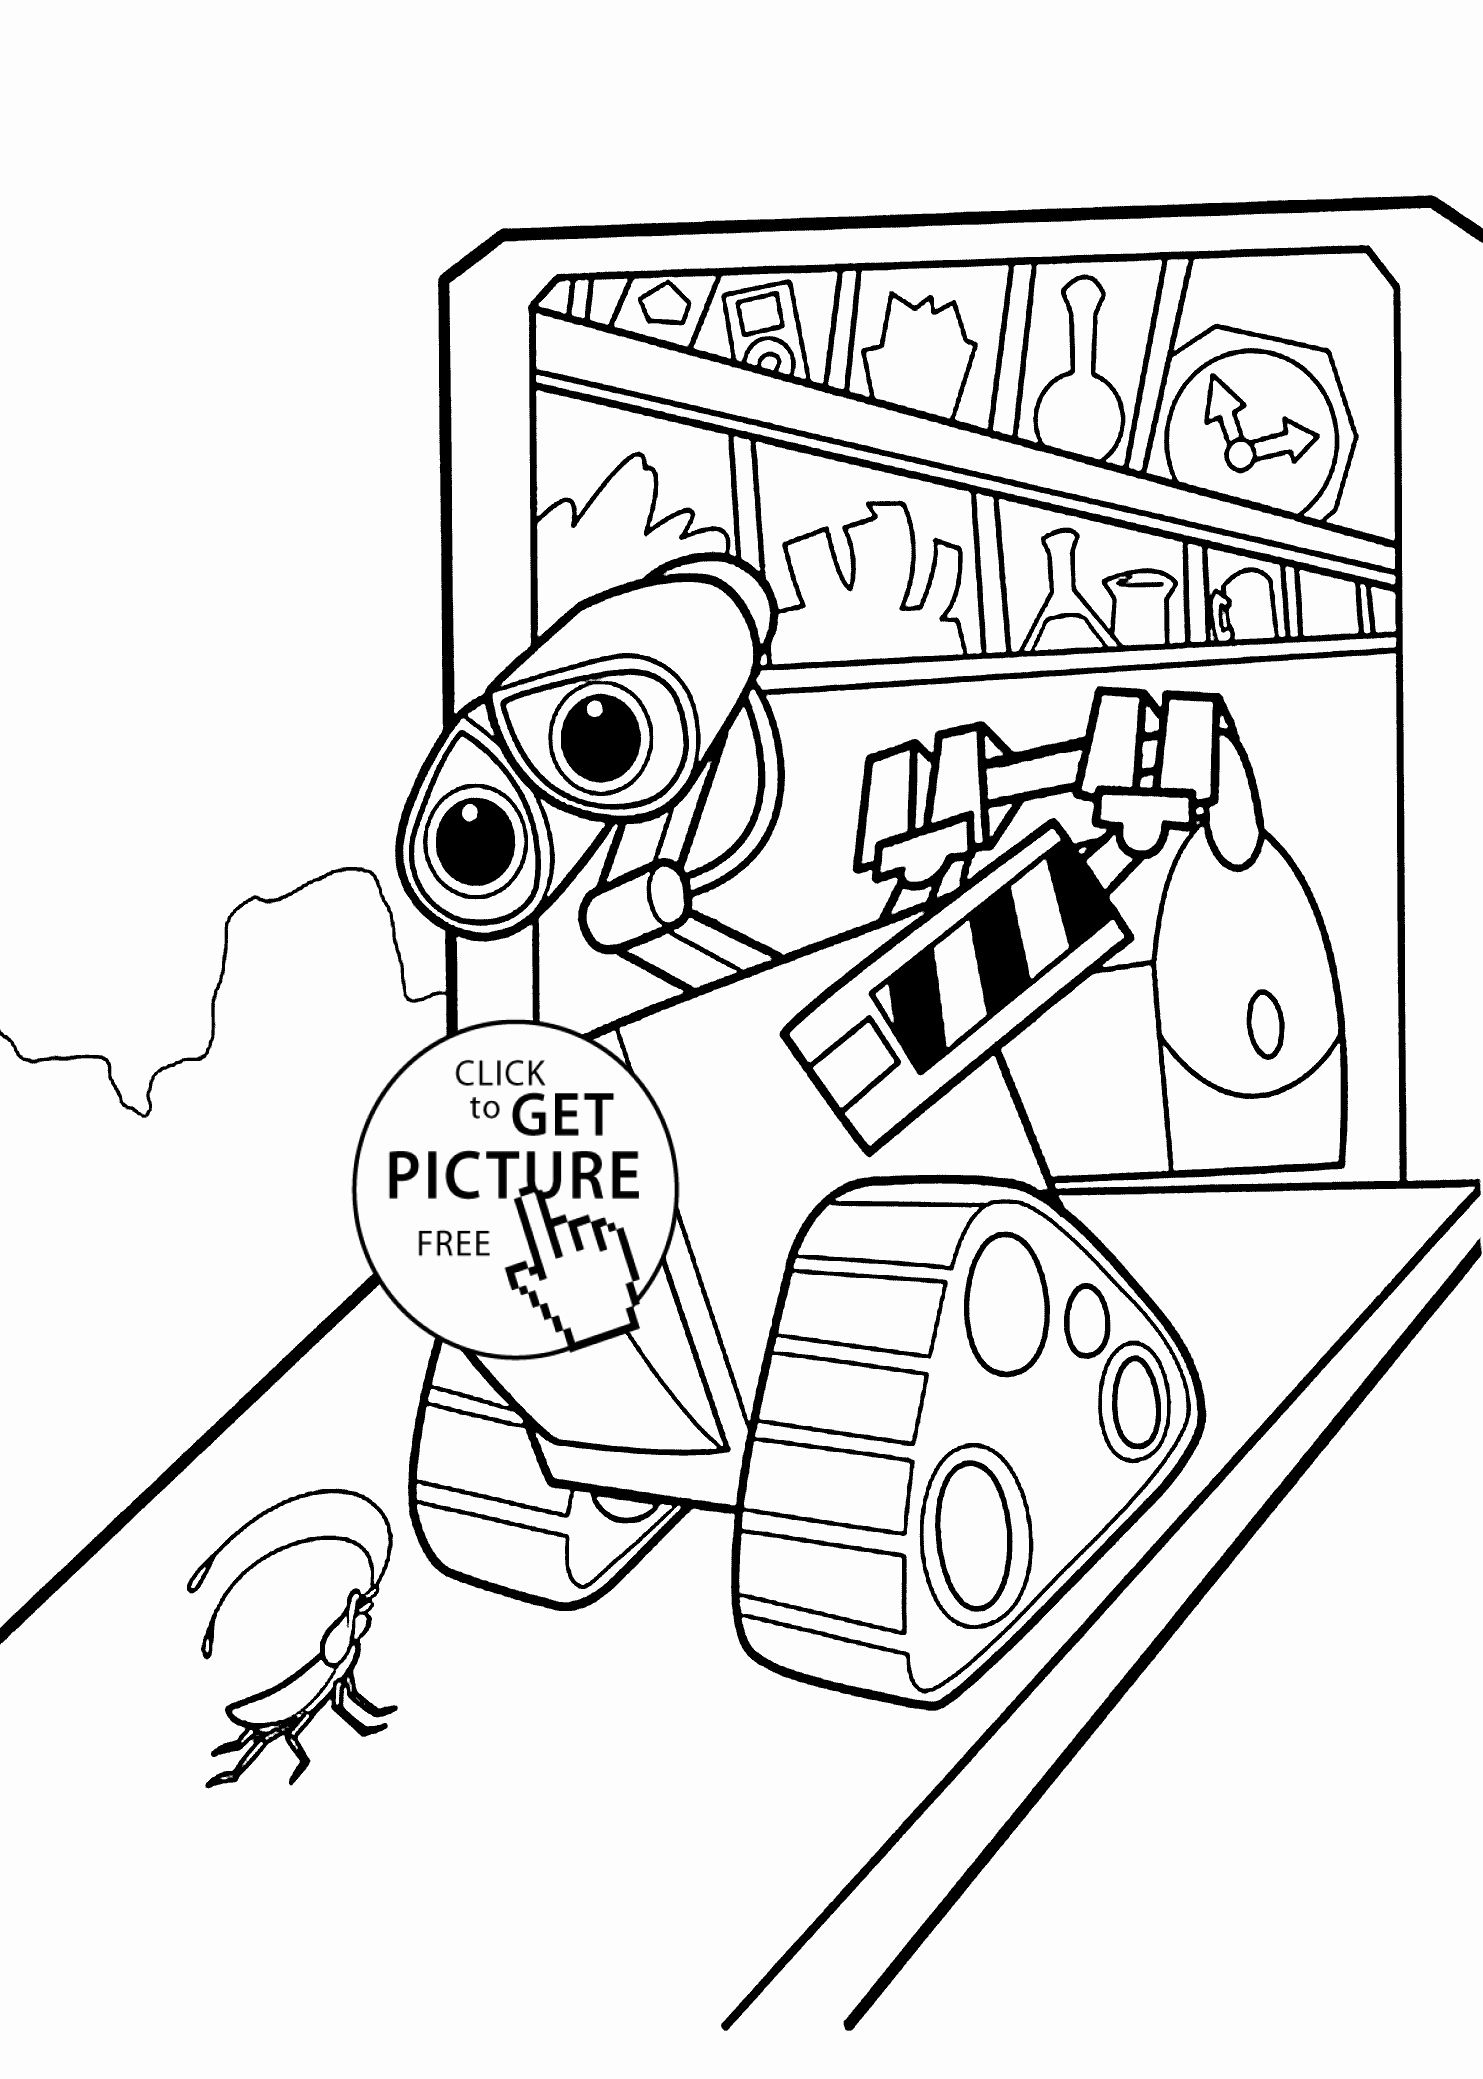 Rainbow Coloring Page Preschool Lovely Wall E Home Coloring Pages